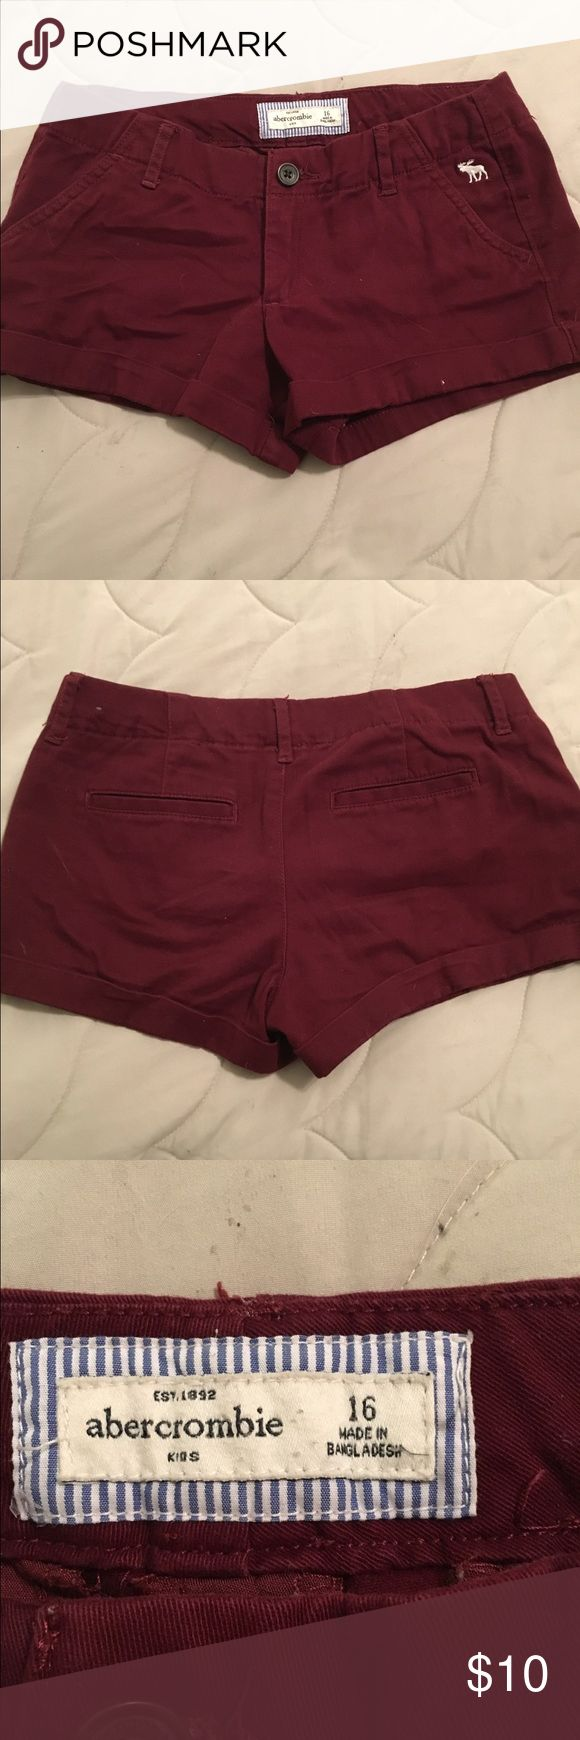 girls shorts Abercrombie girls size 16. Soft, great condition. Smoke-free home. abercrombie kids Bottoms Shorts